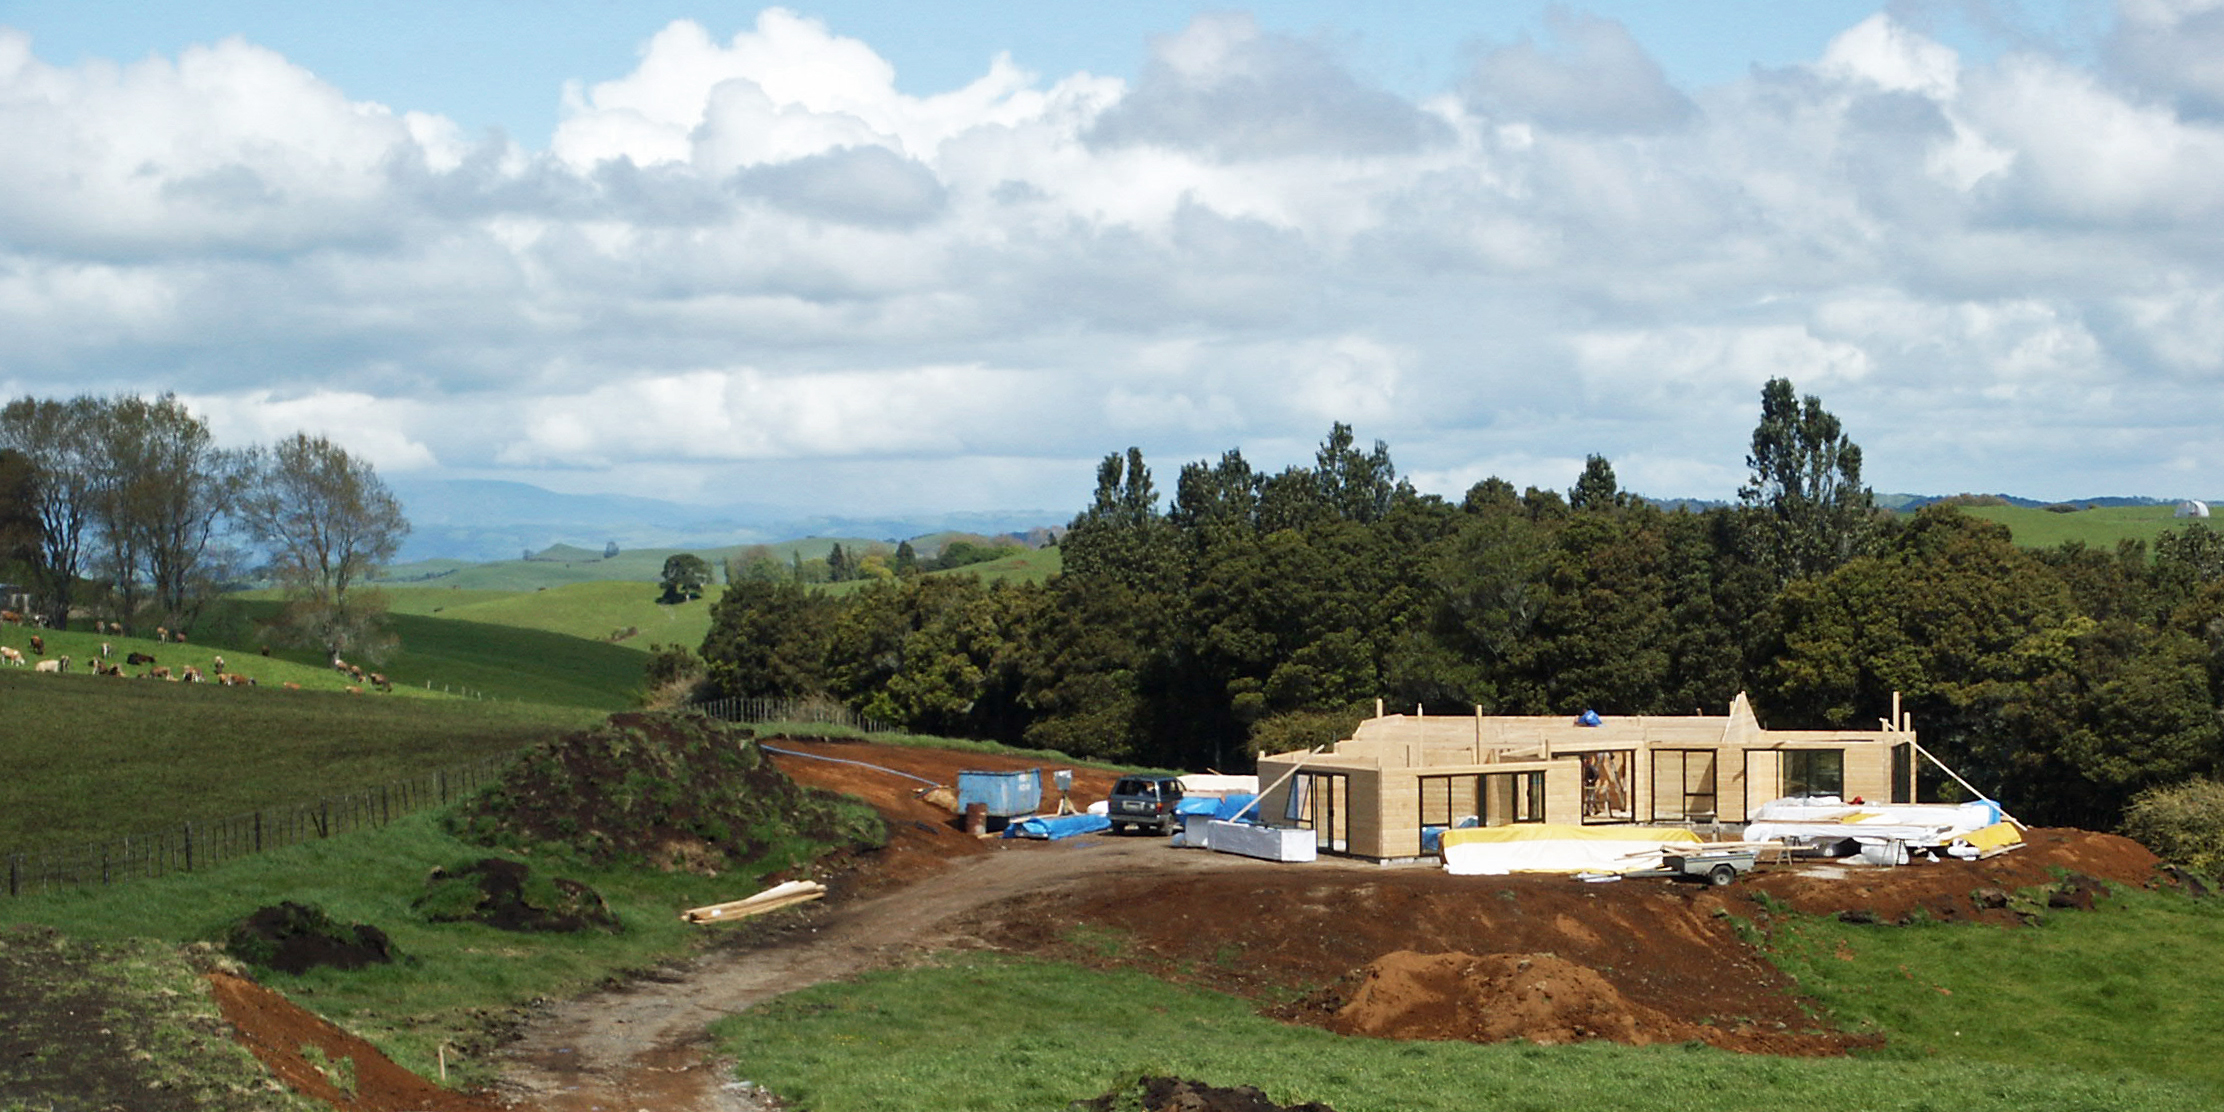 It is the 29th of October. A concrete foundation is in place and our house is going up at breakneck speed.